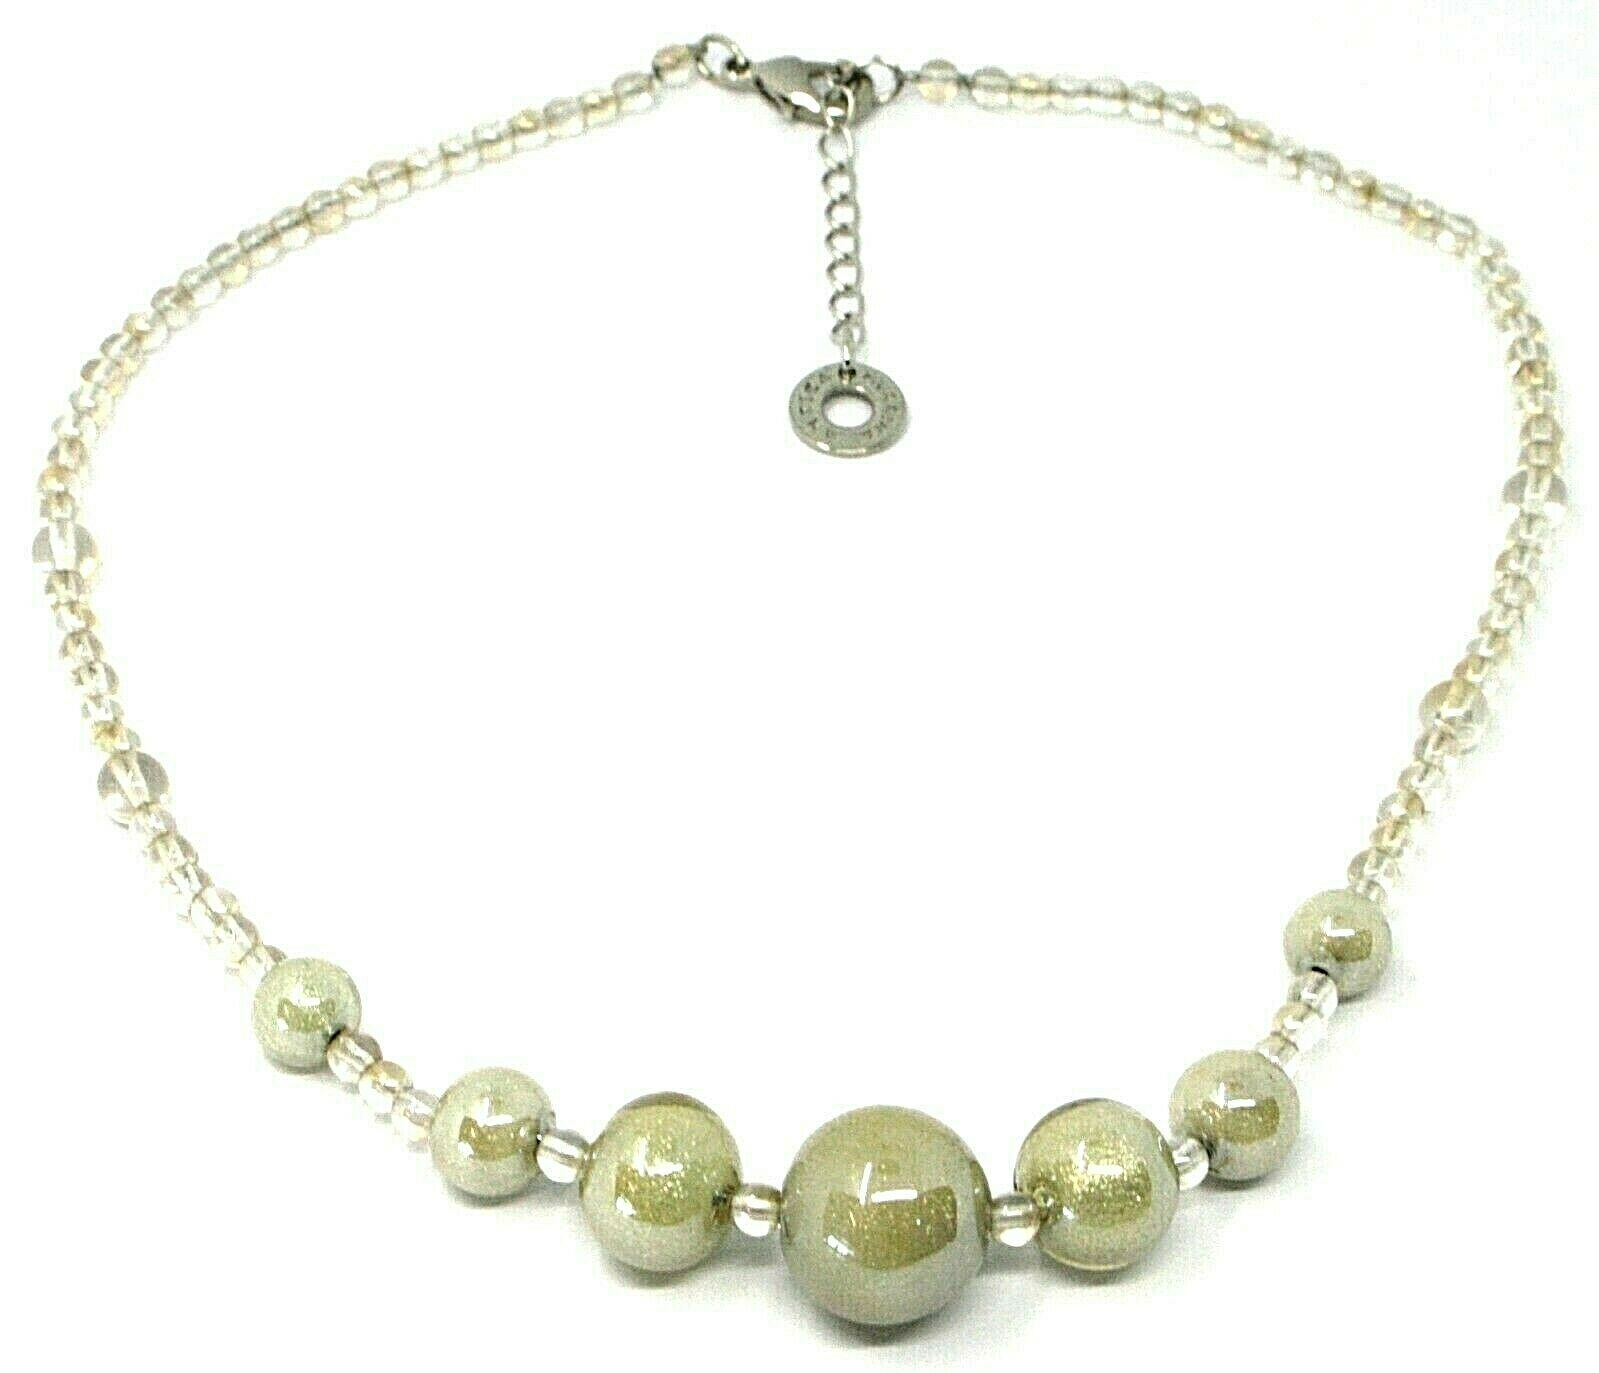 Necklace Antica Murrina Venezia, CO973A02, Spheres Gray Beige, 45 CM